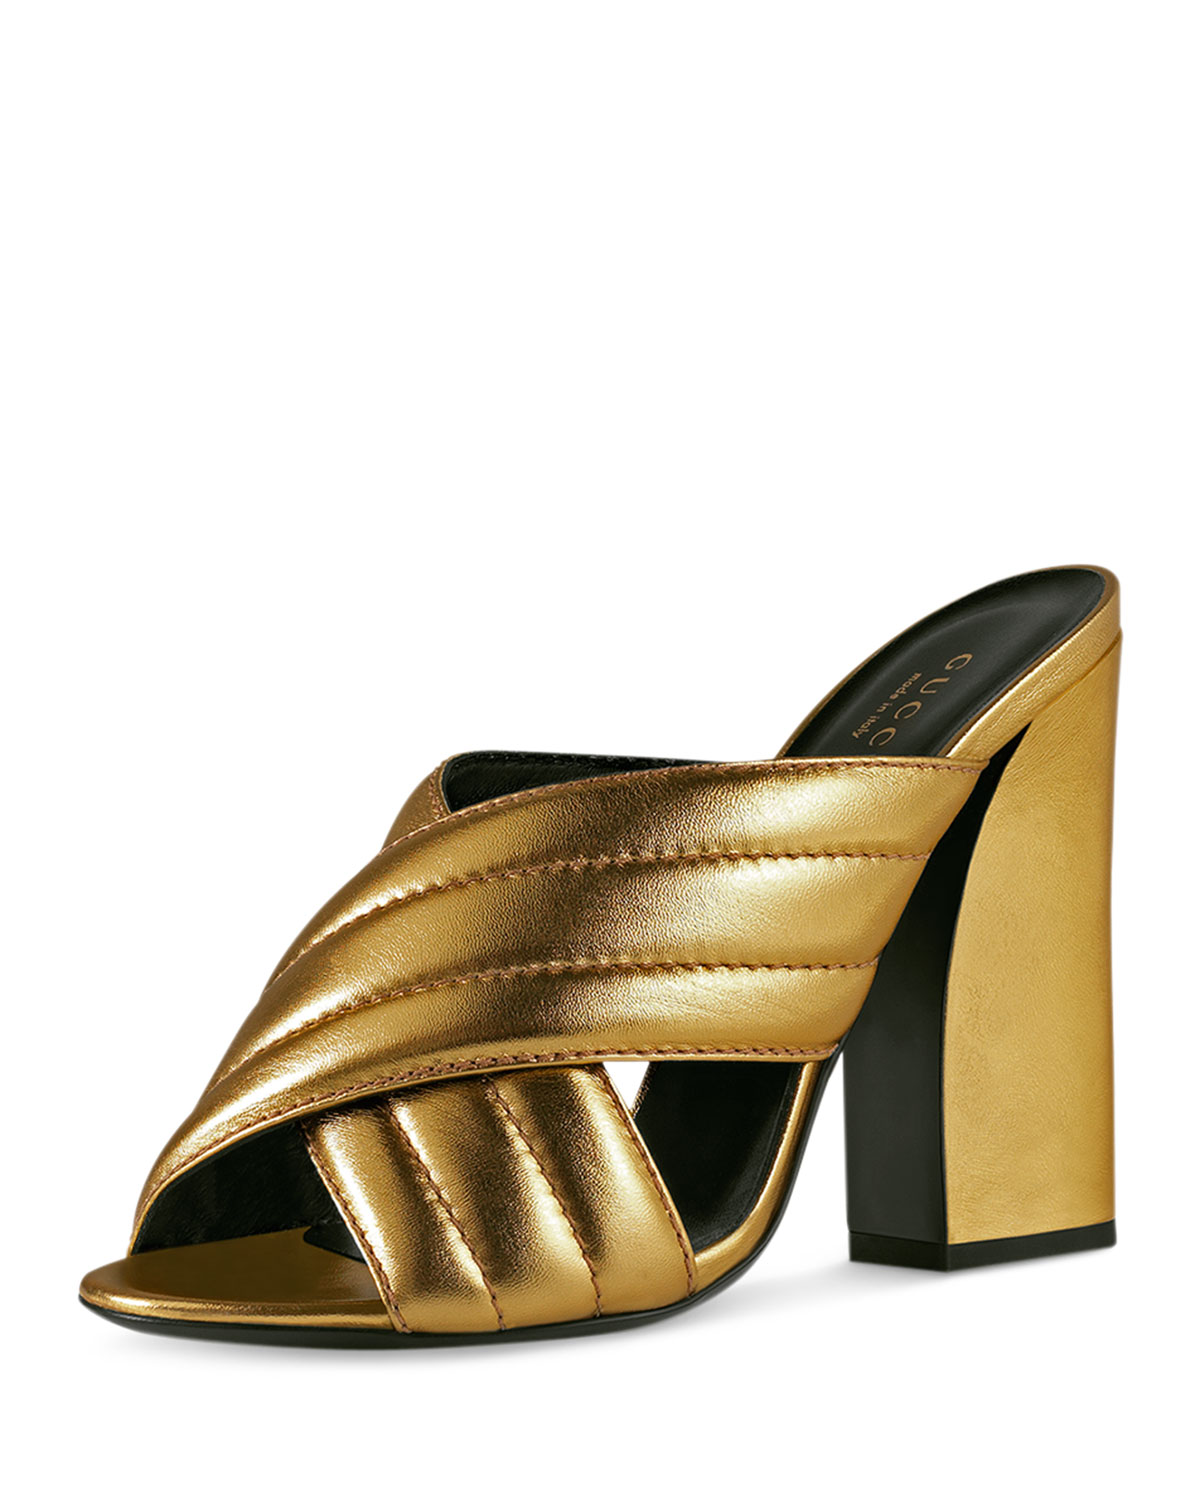 bergdorf-goodman-gucci-cruise-2016-collection-crossover-sandals-gold-shoes-heels